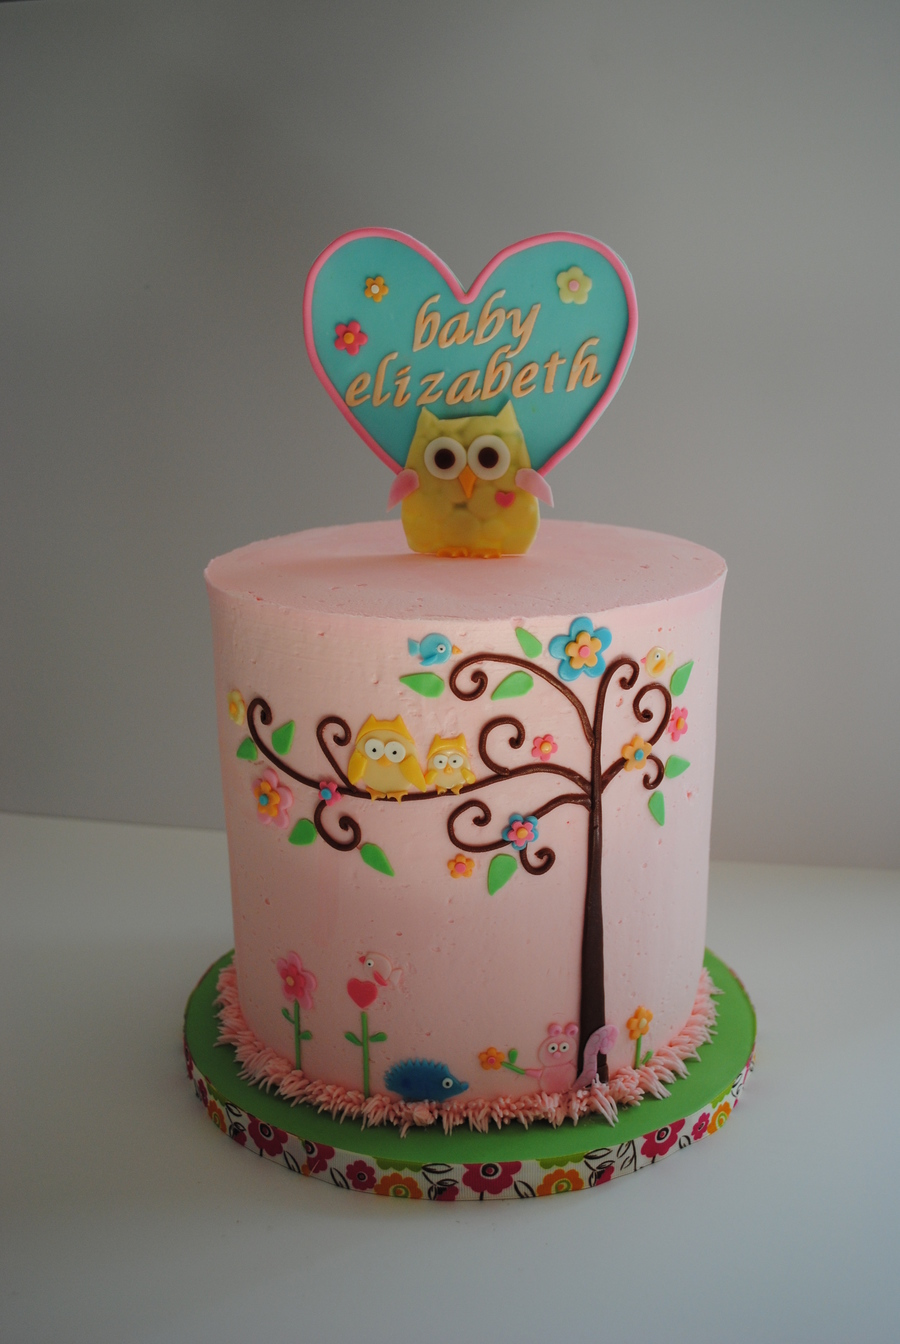 Happi Tree Baby Shower Based On The Nursery Theme Happi Tree Double Barrel Cake 8 High With Smbc Decorations Are Fondant And Gump  on Cake Central